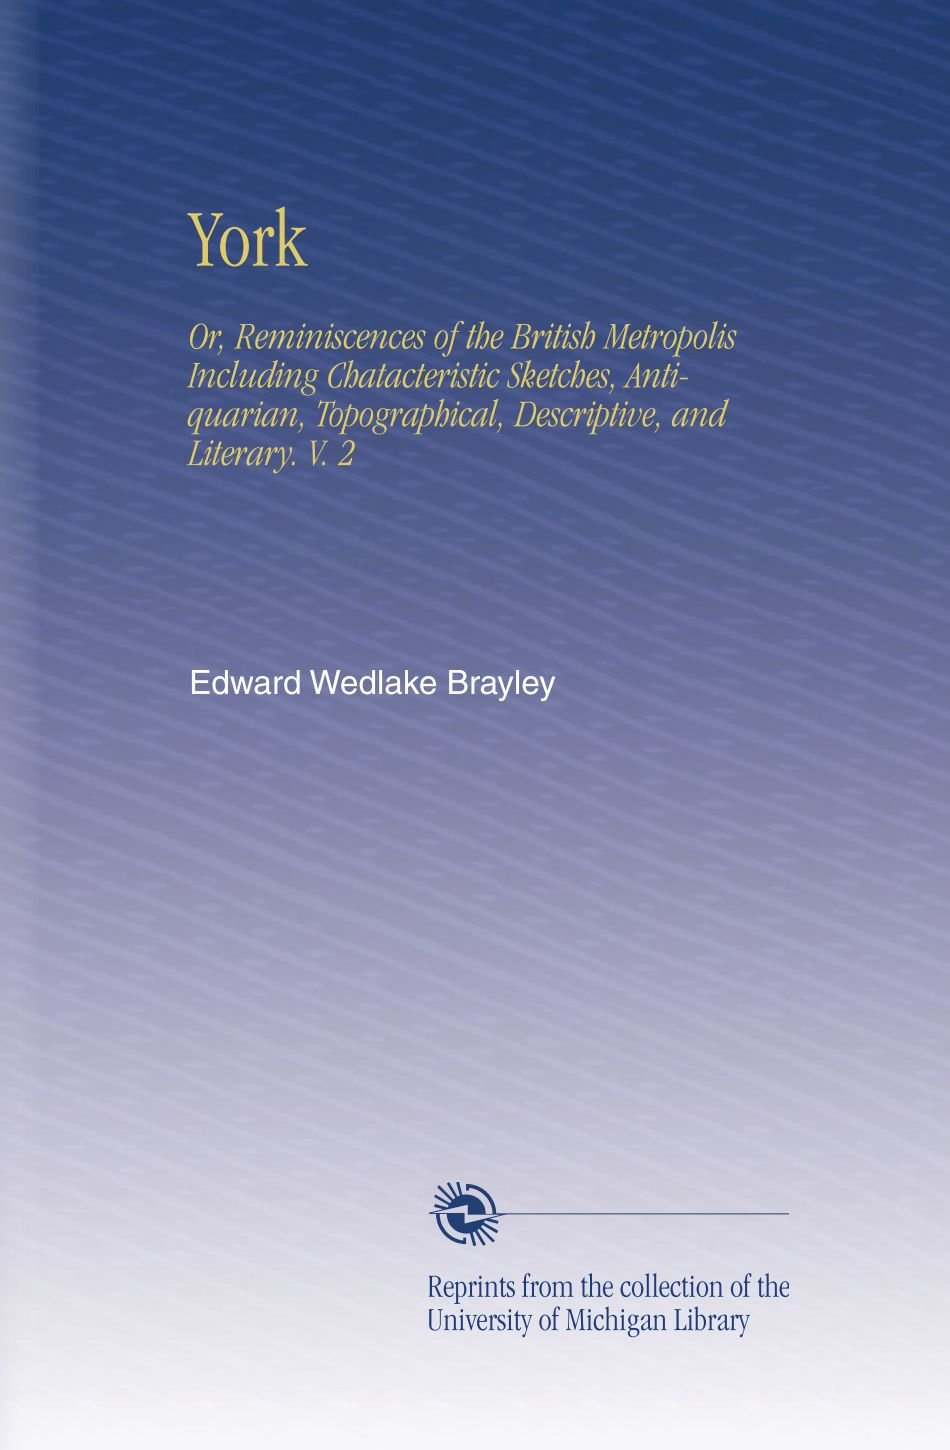 York: Or, Reminiscences of the British Metropolis Including Chatacteristic Sketches, Antiquarian, Topographical, Descriptive, and Literary. V. 2 PDF